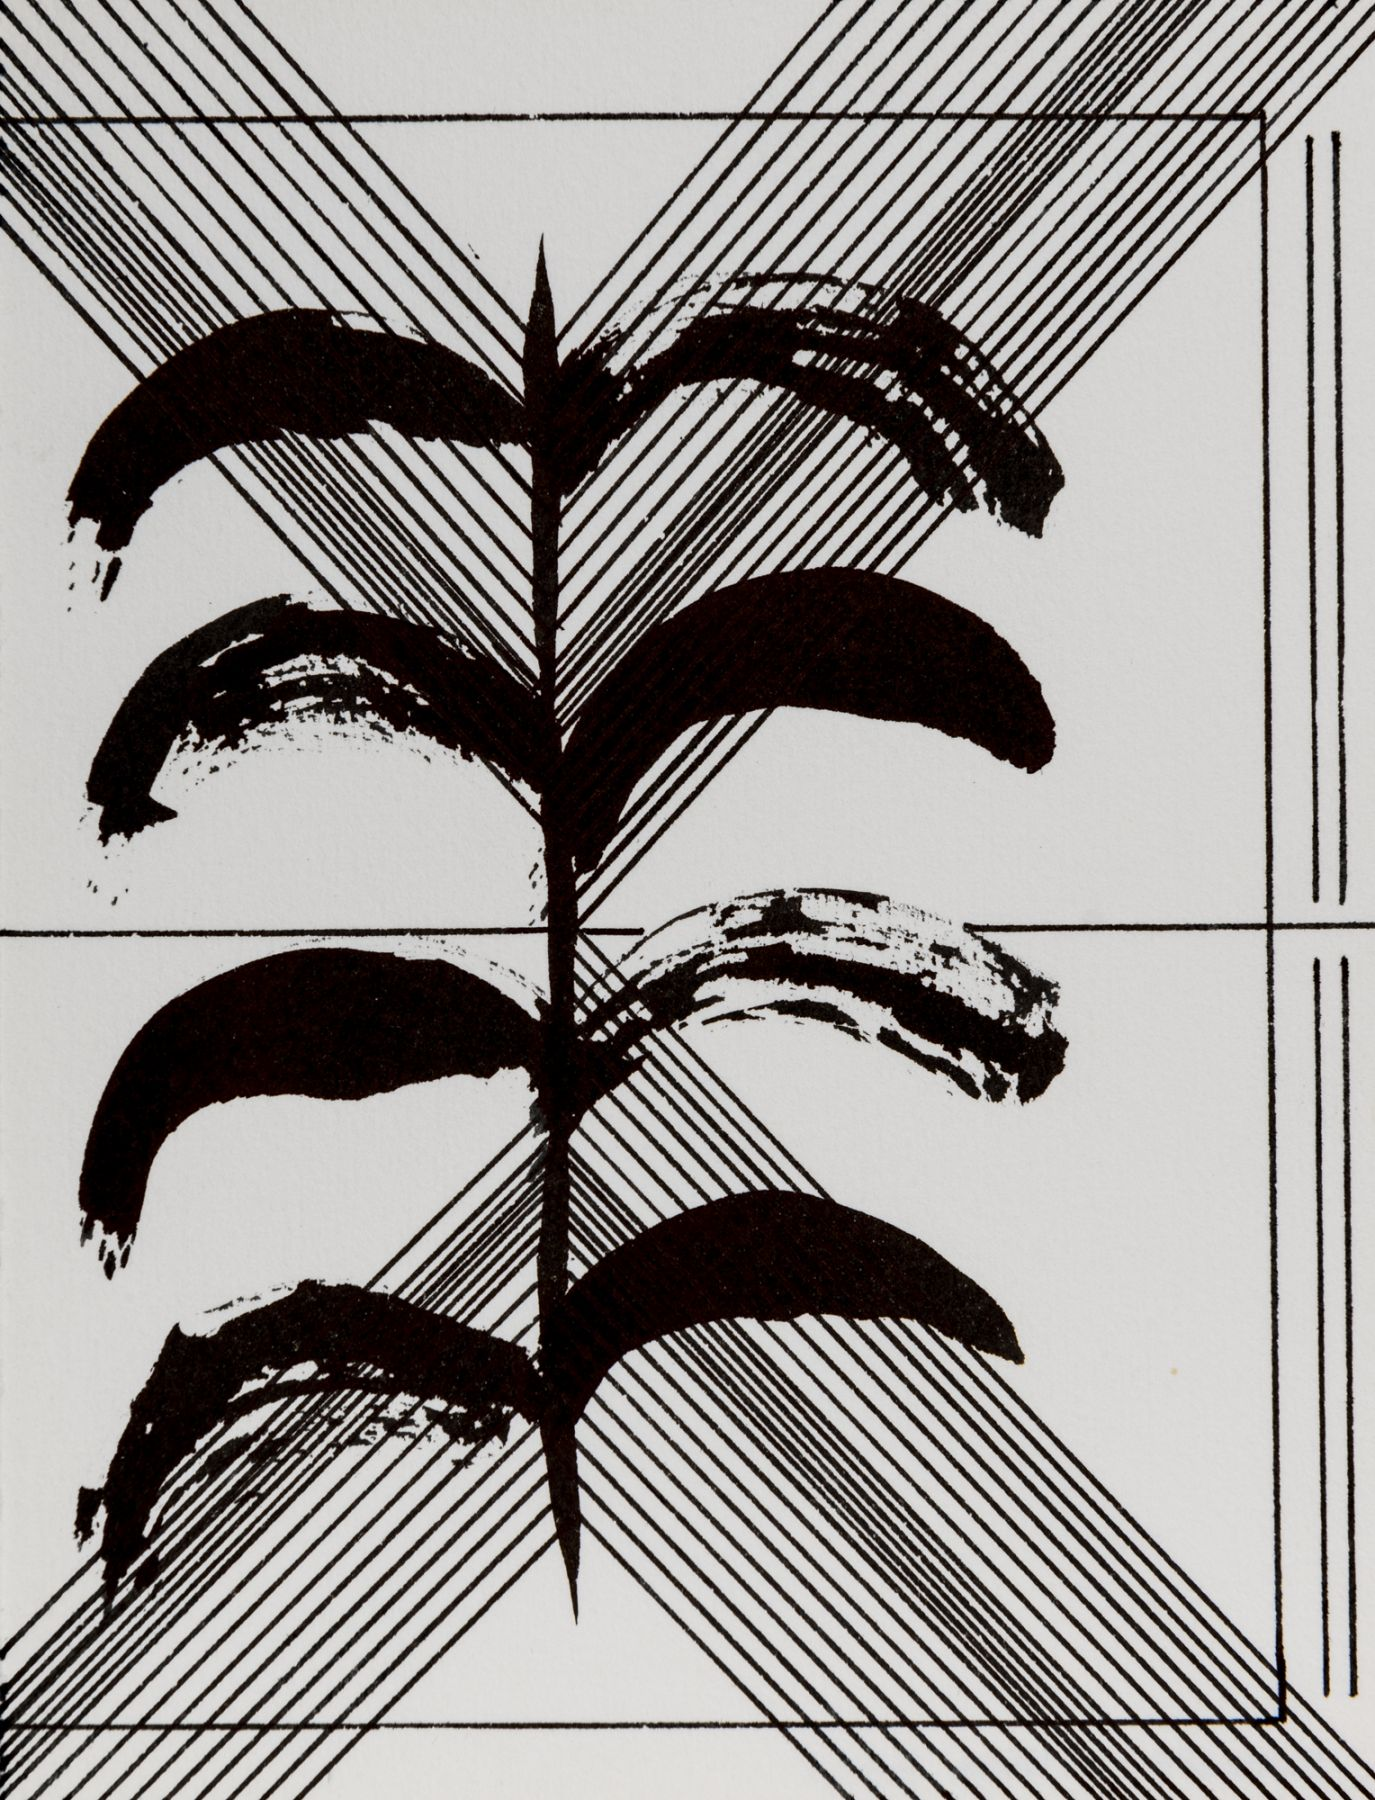 Felrath Hines, Untitled, 1977, Ink on paper,  6.5 x 5 inches,  Unsigned. Vertical thin lines shaped in the form of a V on top and on the bottom of the paper. Leaf shaped drawing in the middle of the image. Felrath Hines worked to create universal visual idioms from a place of complex personal experience. His figurative and cubist-style artwork morphed into soft-edged organic abstracts as he grappled with hues in his chosen oil medium.